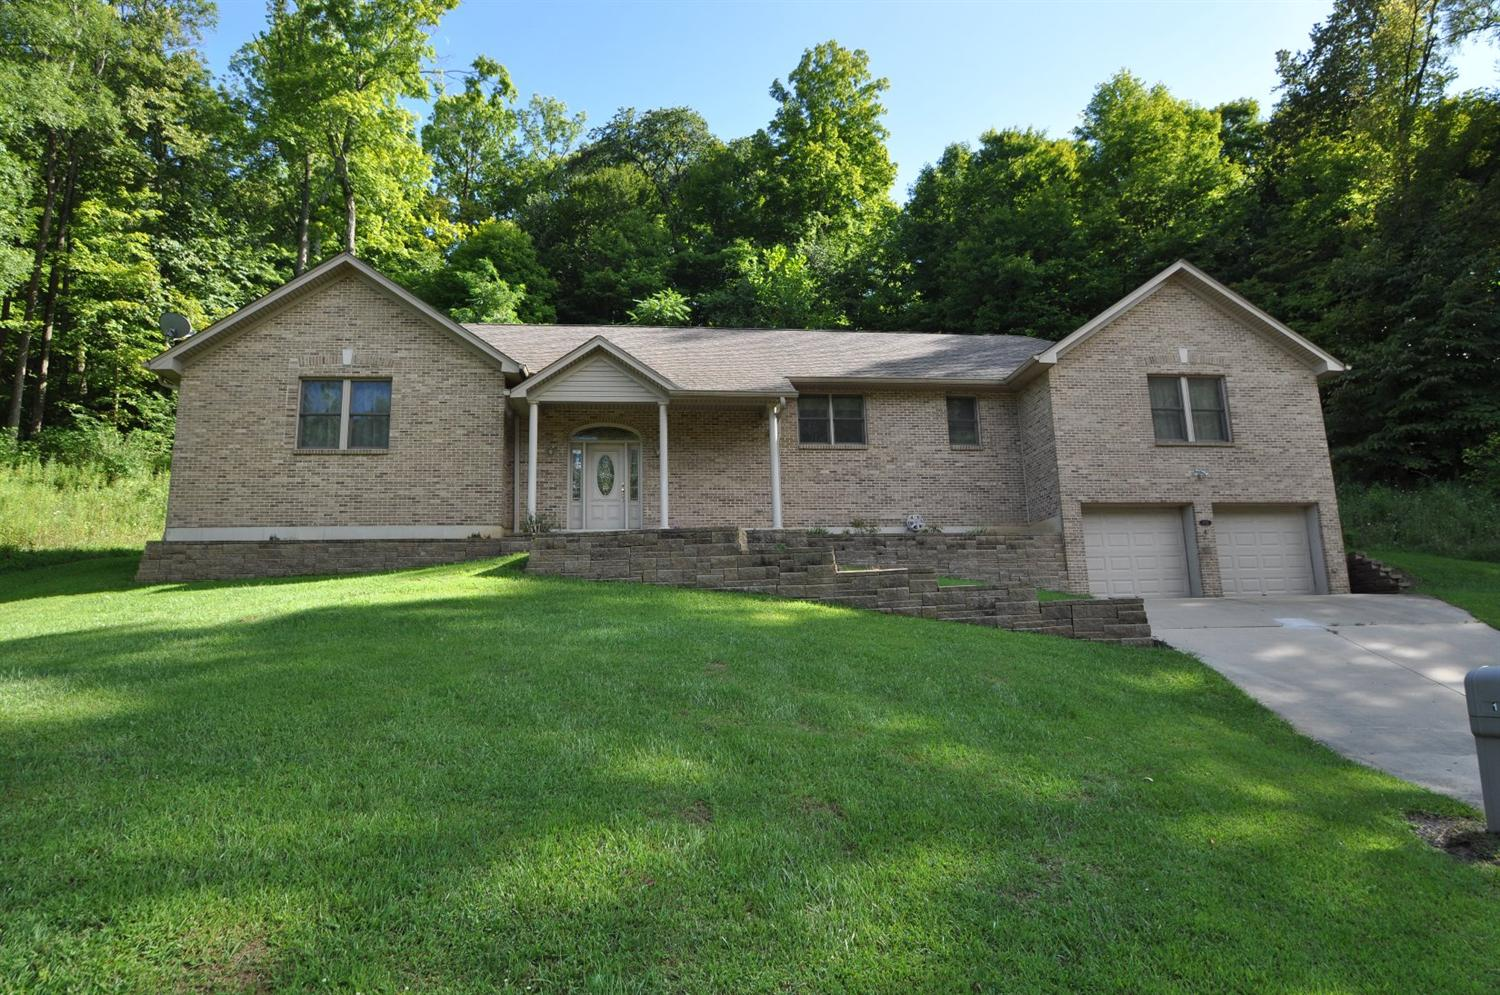 Rental Homes for Rent, ListingId:35747433, location: 1722 Valley Drive Ft Mitchell 41017